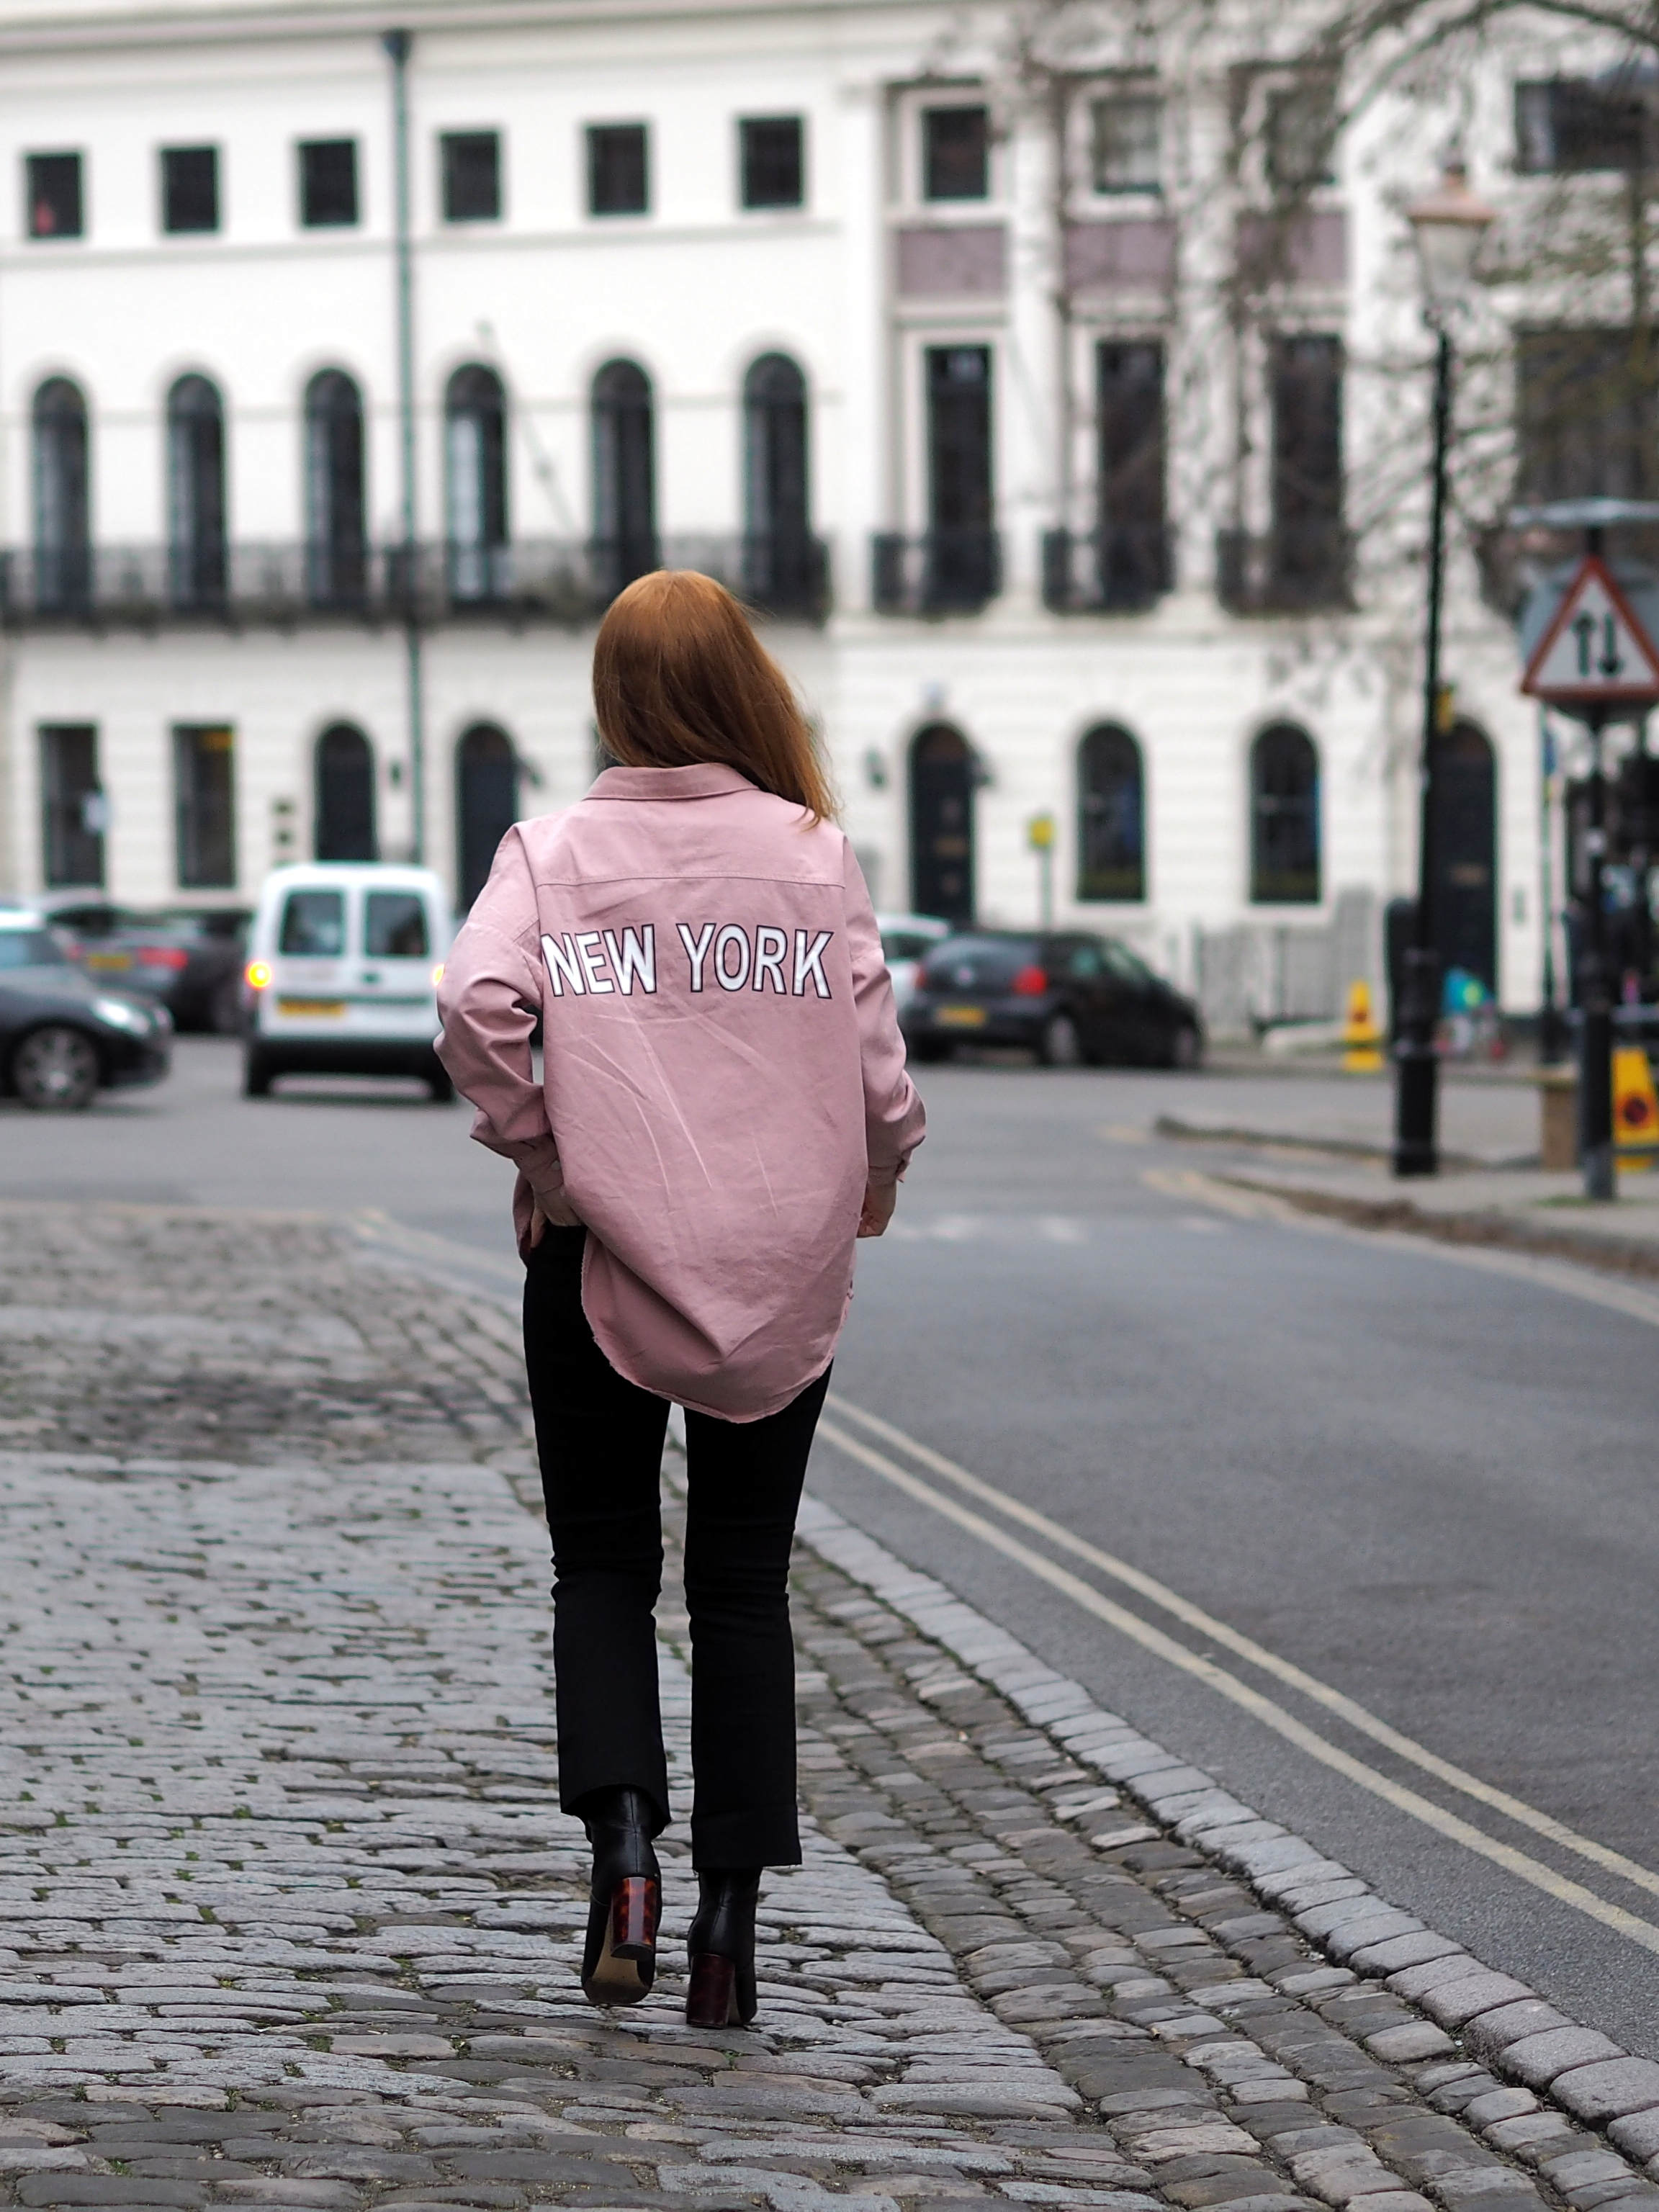 Styling the Pink trend with an oversized pink denim shirt with 'New York' slogan from Missguided, paired with kick flare jeans